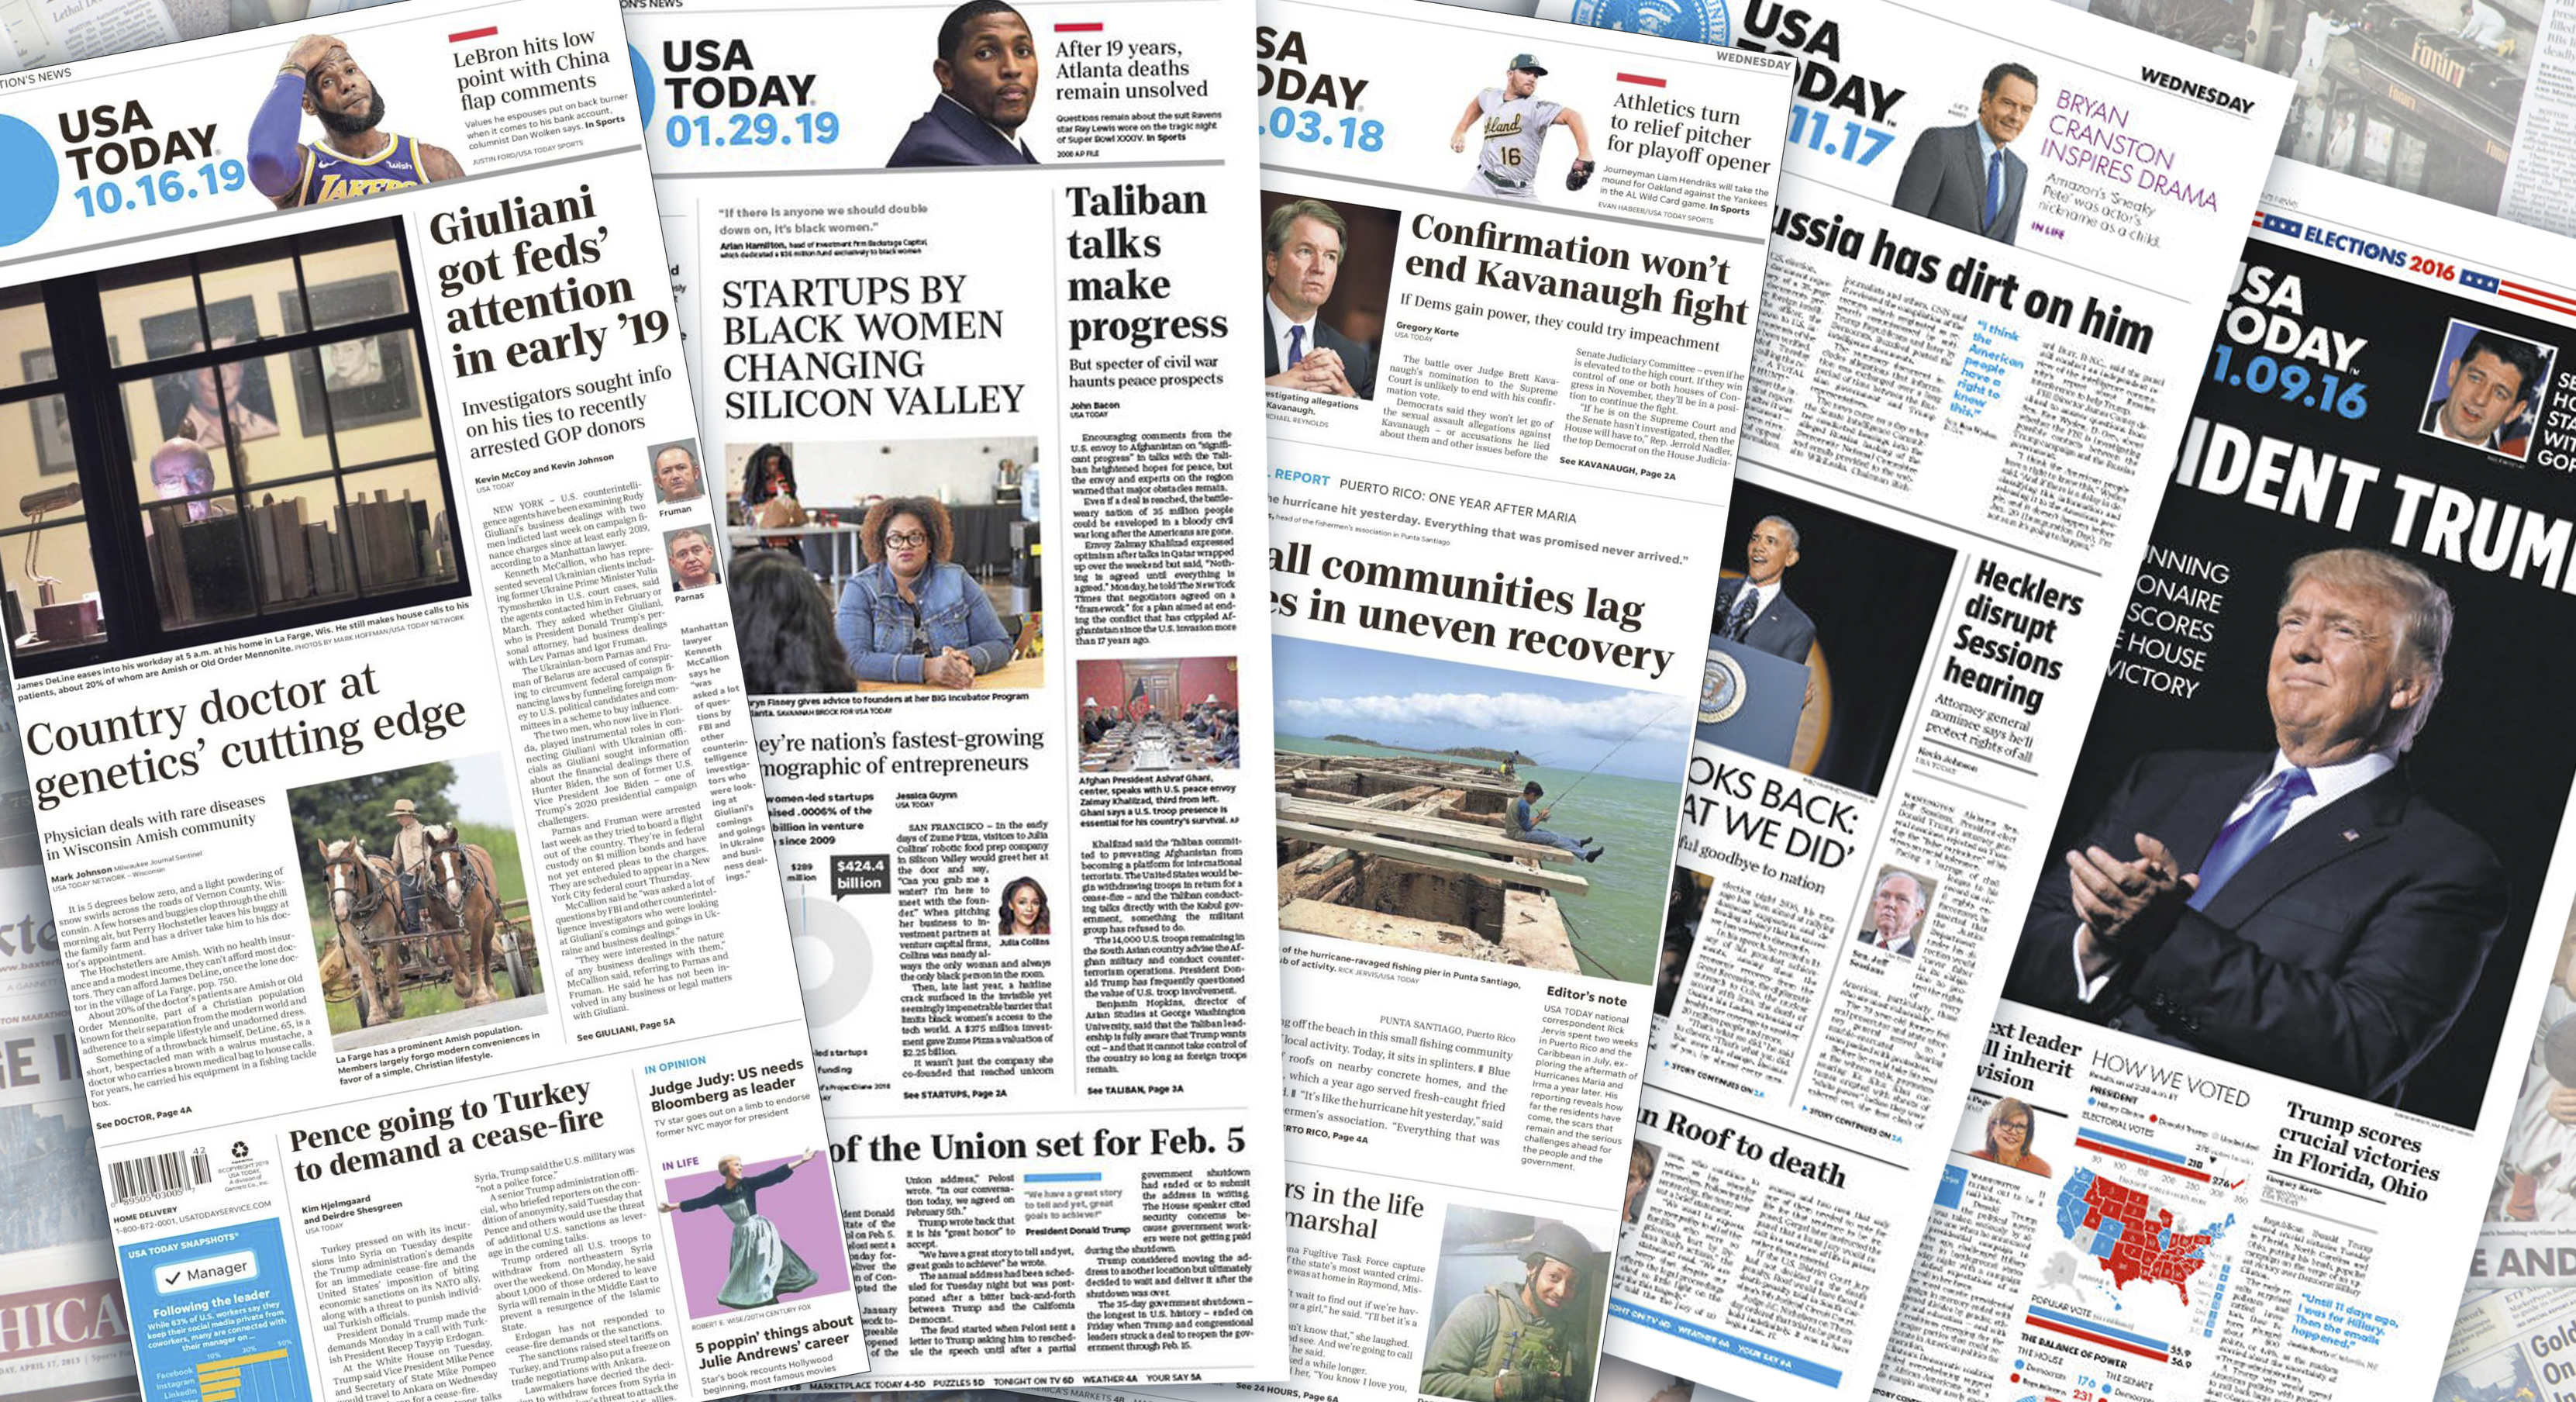 USA Today starting to 'phase out' print edition, report says, as publisher pushes back